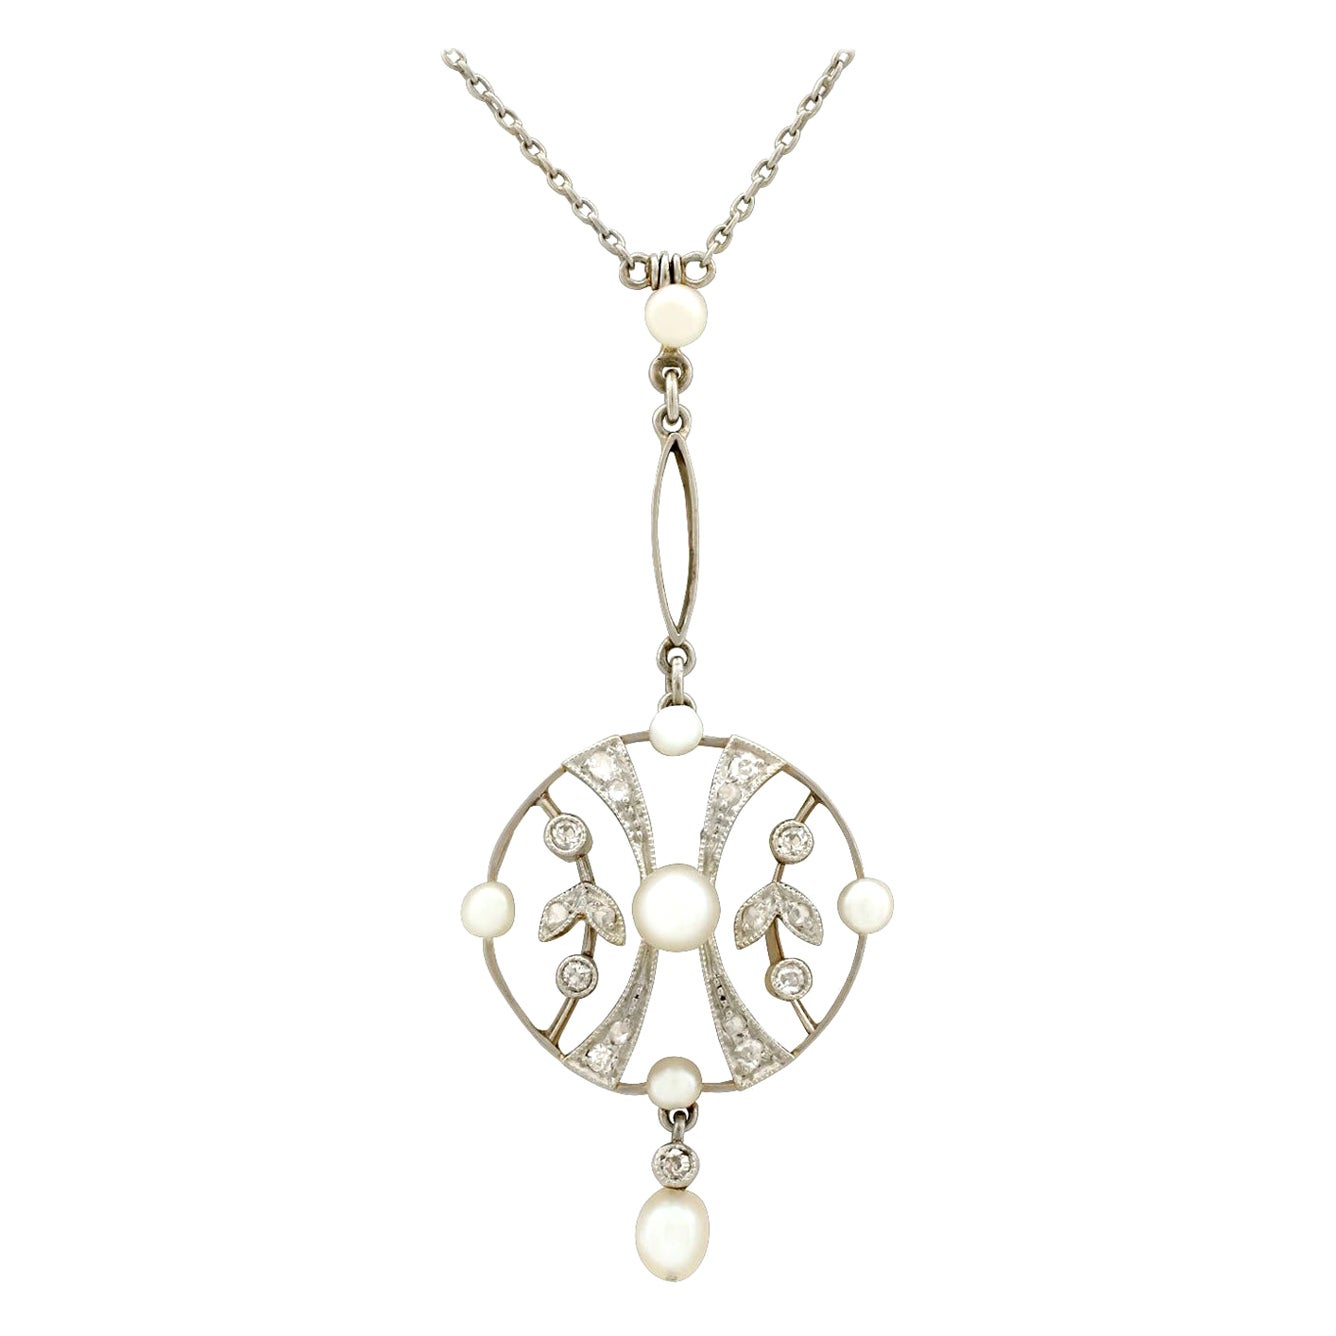 Antique 1910s Seed Pearl and Diamond Yellow Gold Pendant